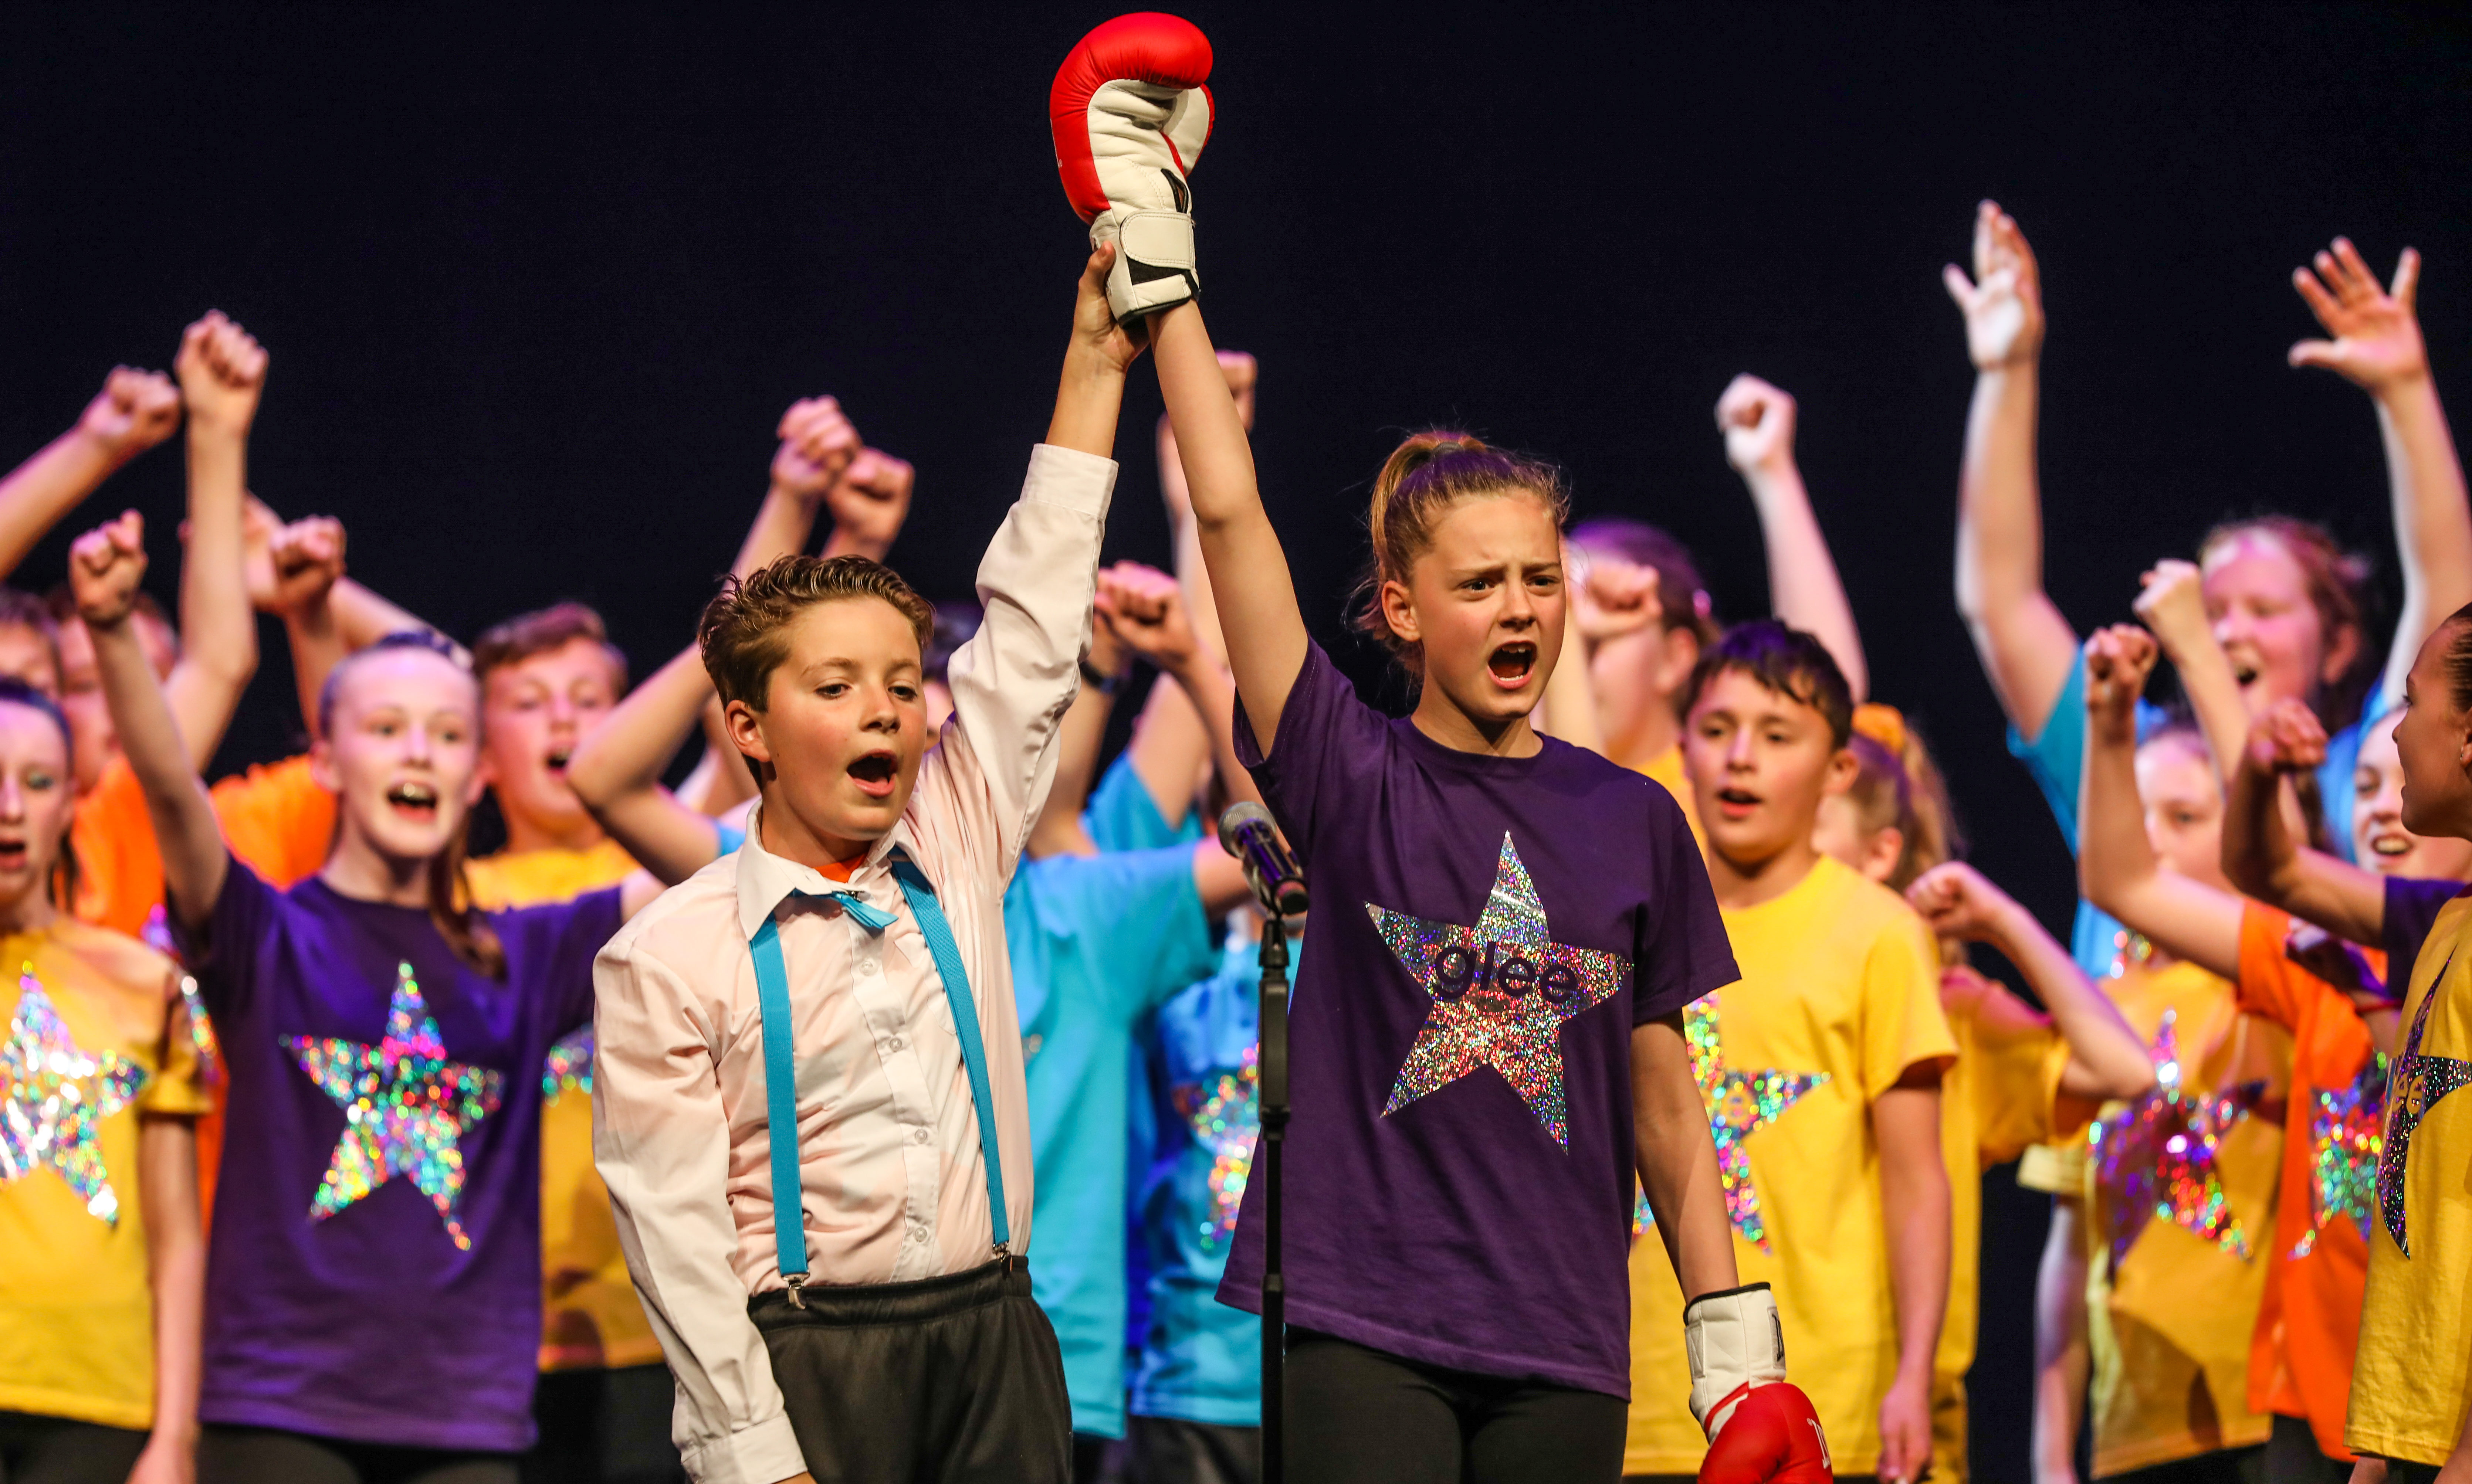 Pupils from Oakbank Primary School perform on stage.